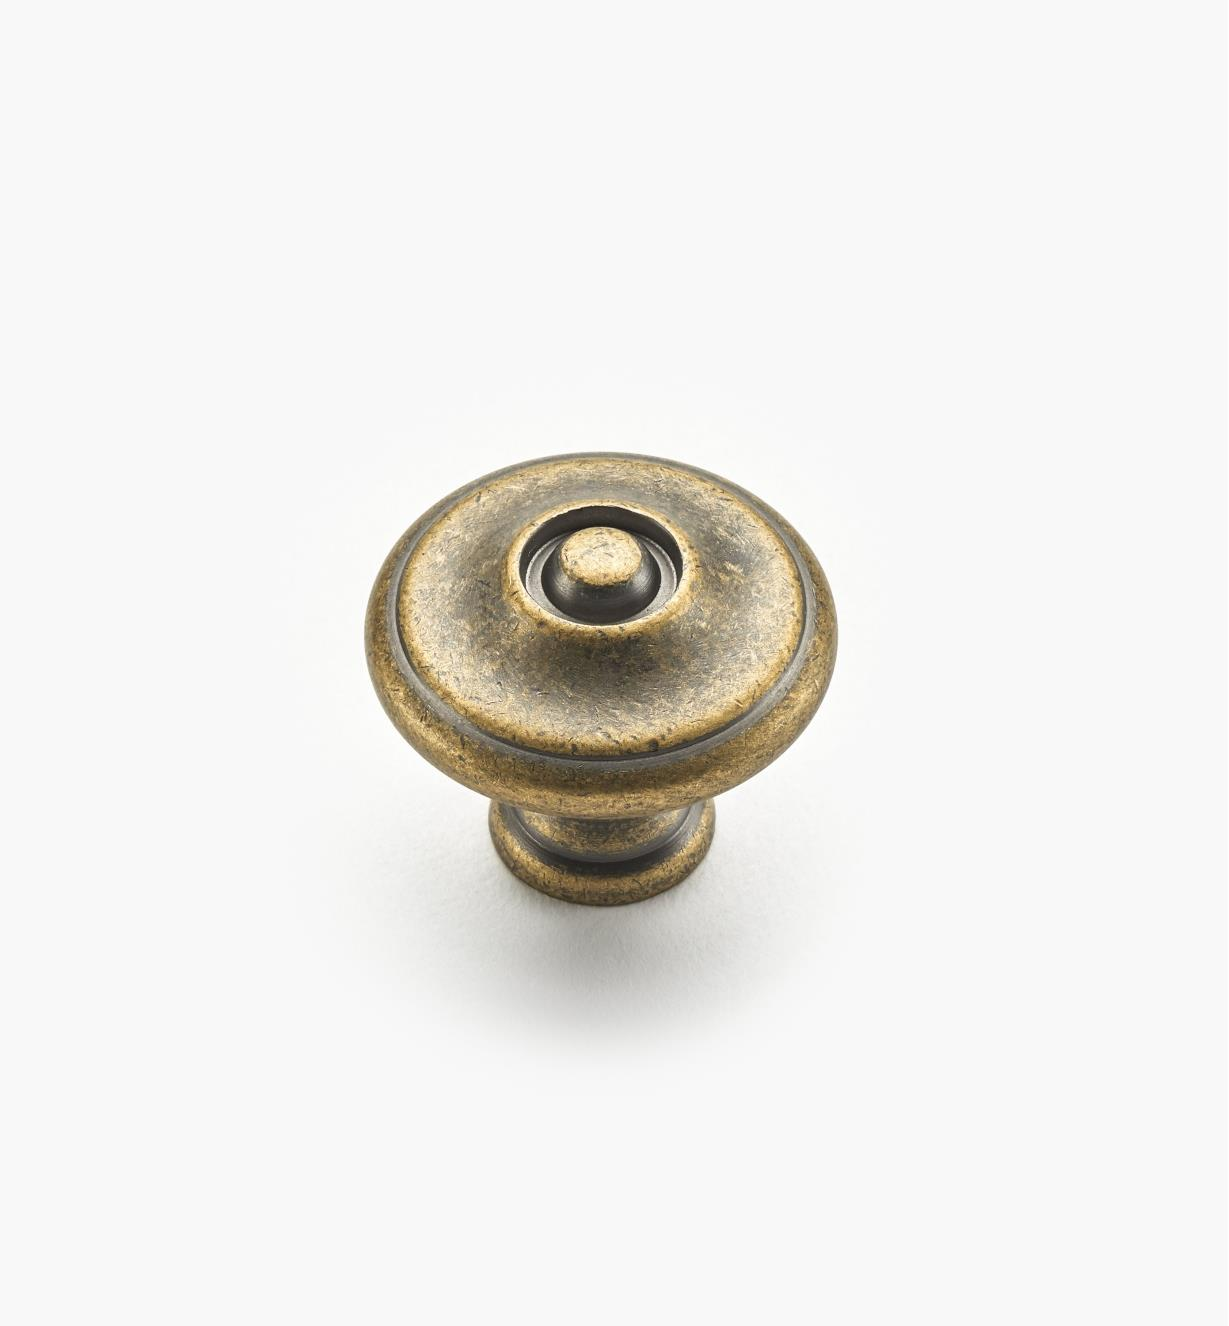 "02W1243 - 1 1/8"" x 1"" Antique Brass Knob"